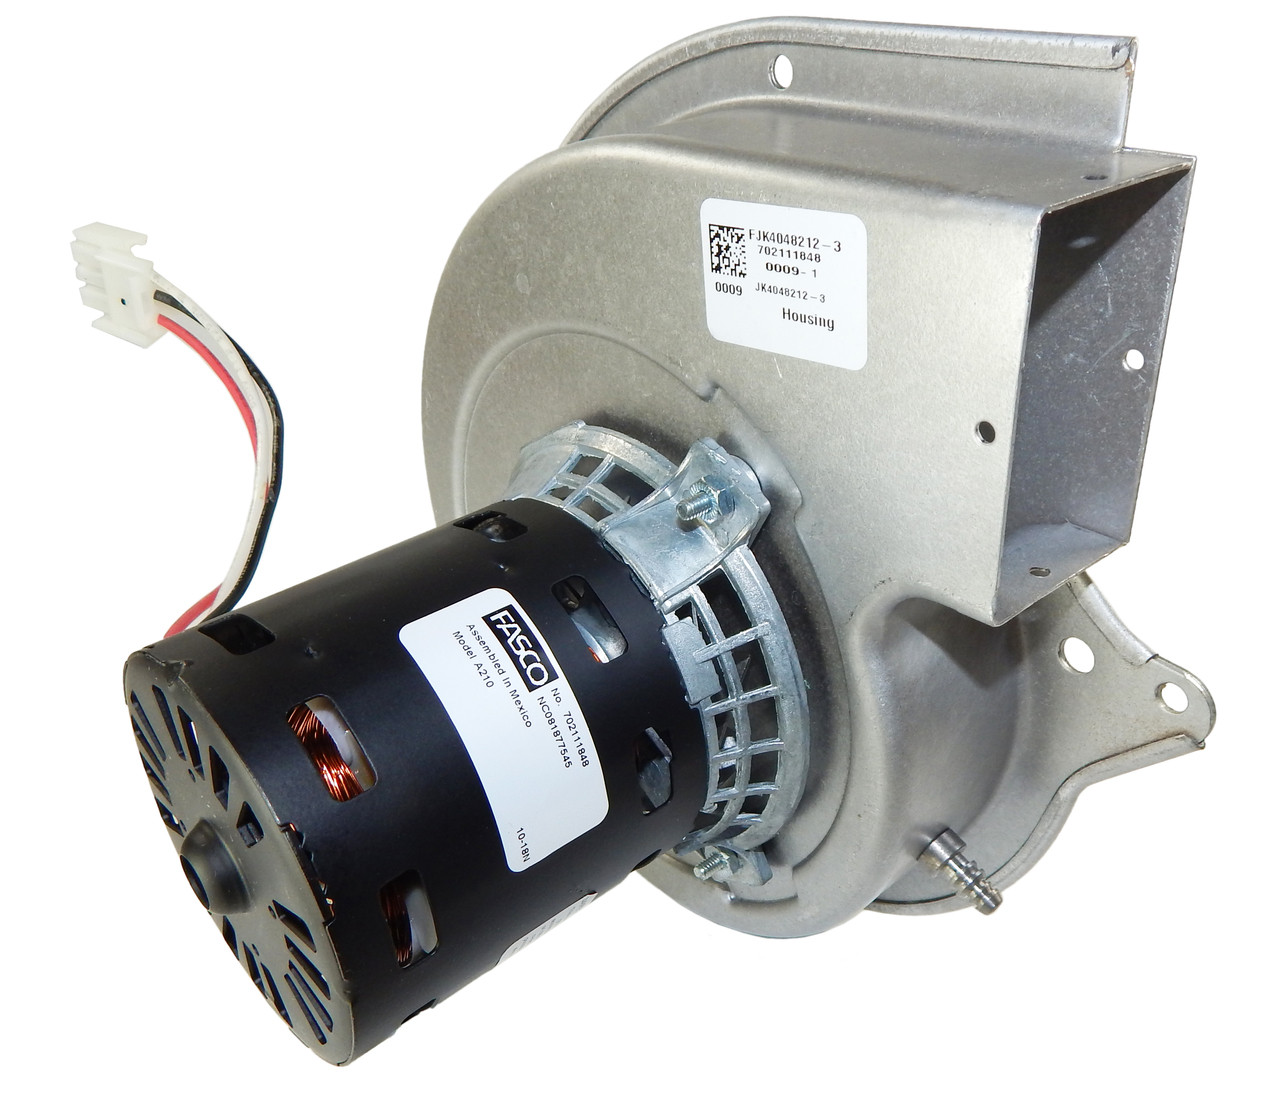 hight resolution of lennox furnace draft inducer blower 115v 7021 11063 18m67011 fasco a210